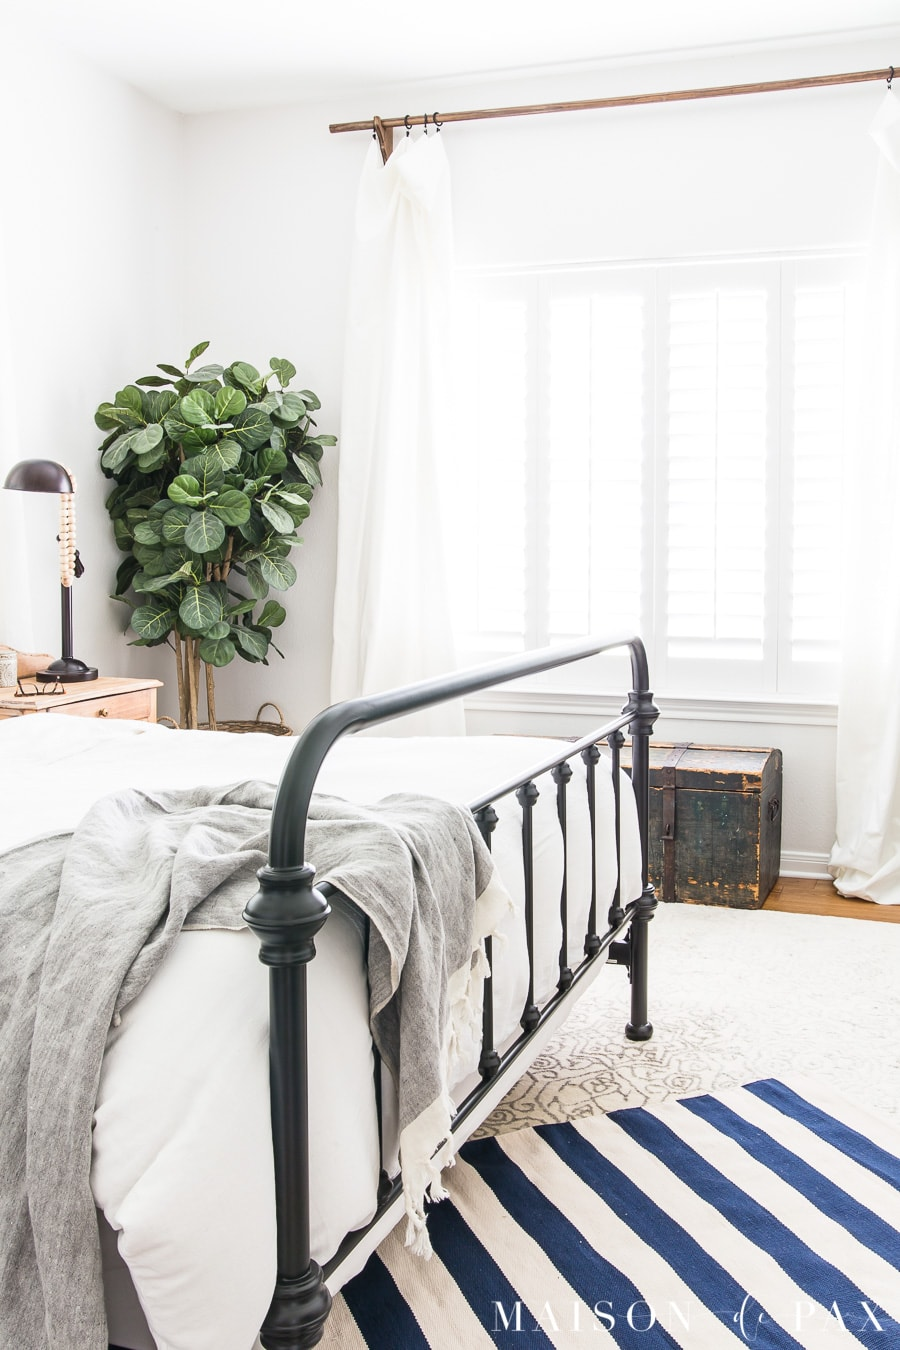 Get blue and white bedroom decorating ideas! #layeredrugs #bluewhite #bedroomdecor #bedroomdecoratingideas #whitebedding #ironbed #farmhousestyle